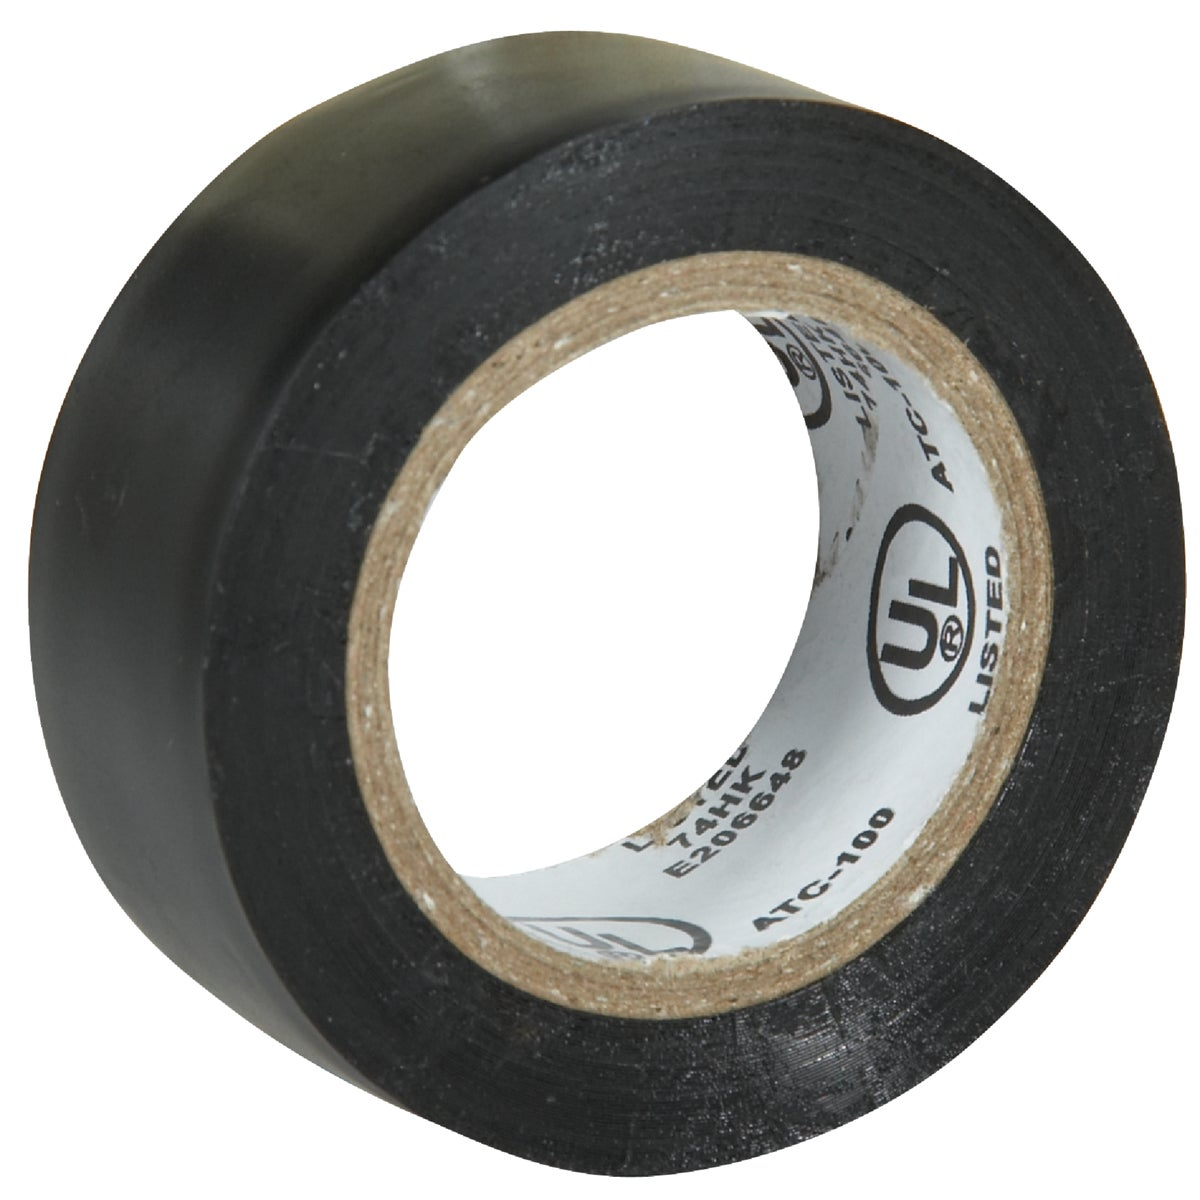 "3/4""X20' ELECTRICAL TAPE - 502129 by Do it Best"